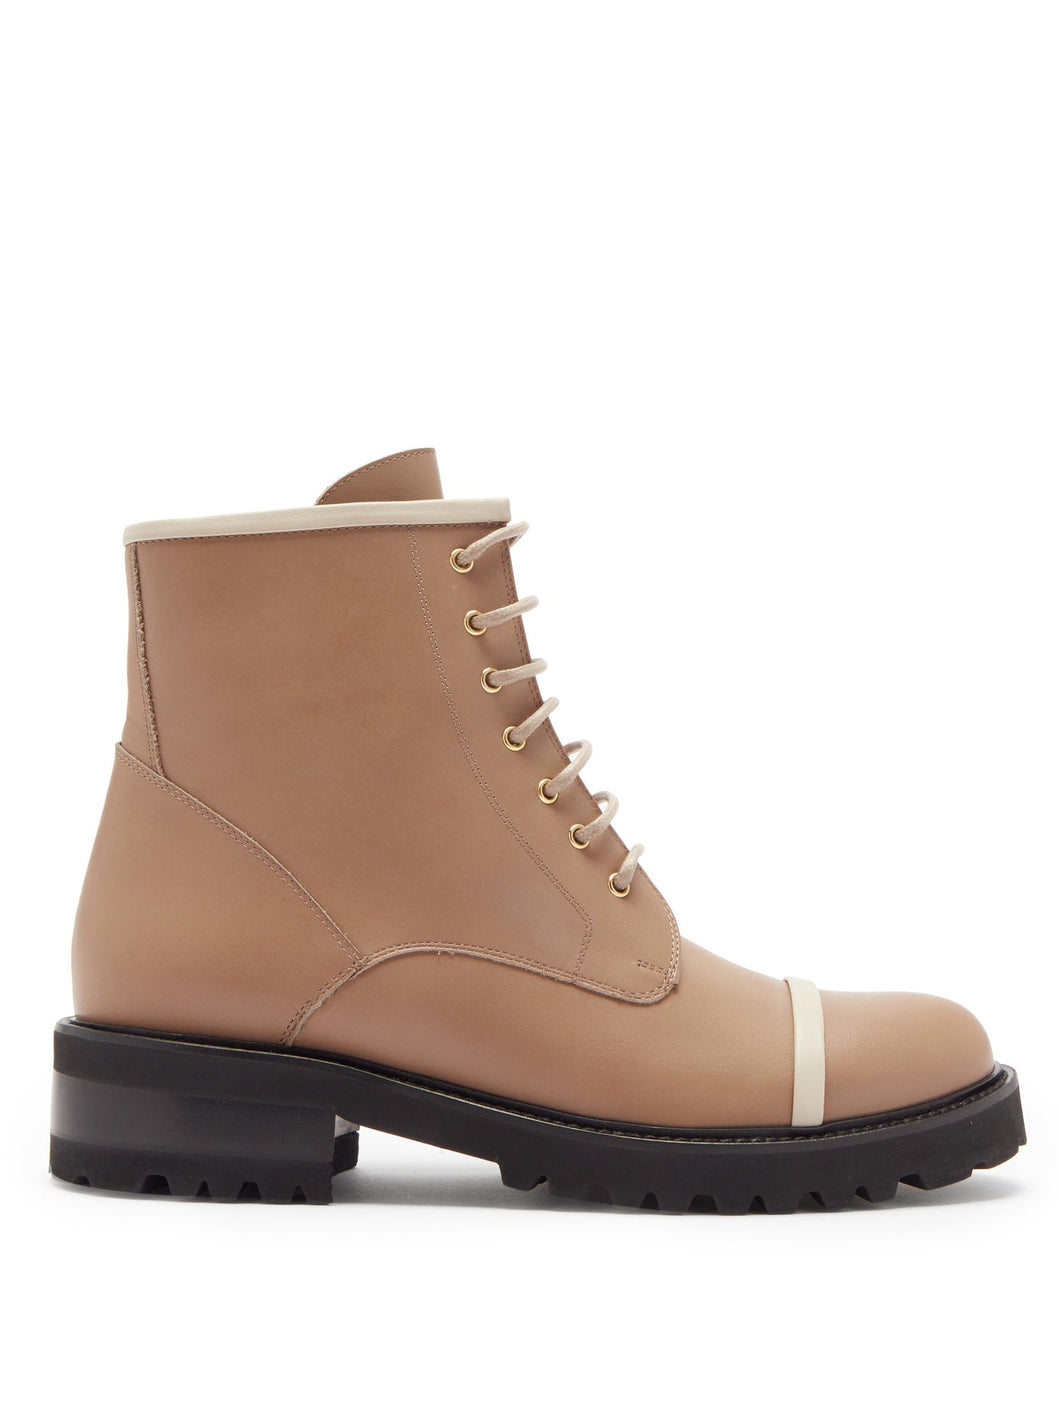 Bryce leather combat boots